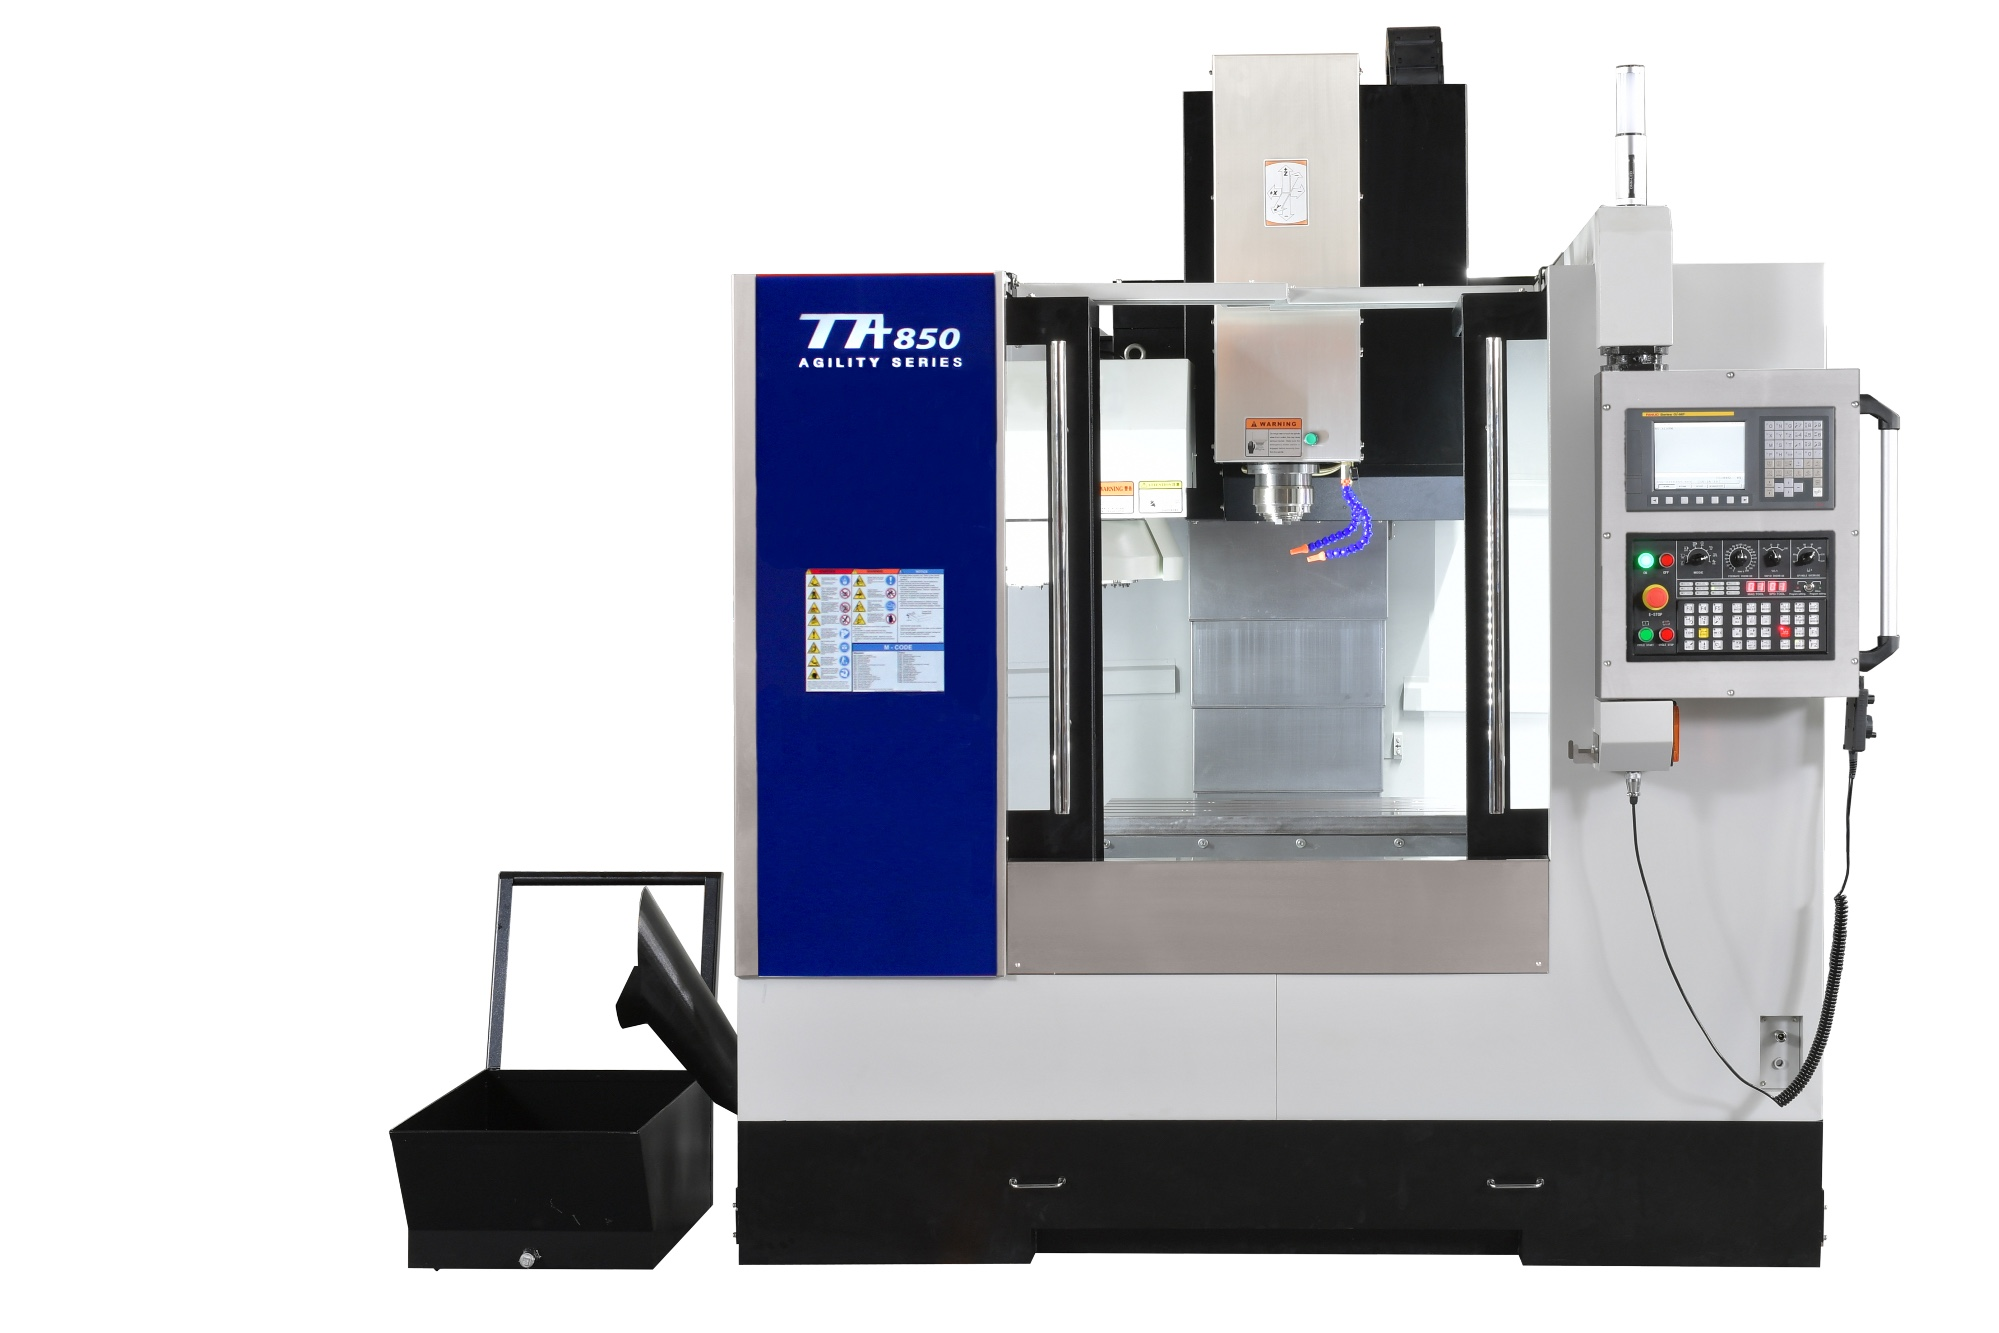 TA-850 Entry Level CNC Vertical Machine Center Manufacturers, TA-850 Entry Level CNC Vertical Machine Center Factory, Supply TA-850 Entry Level CNC Vertical Machine Center